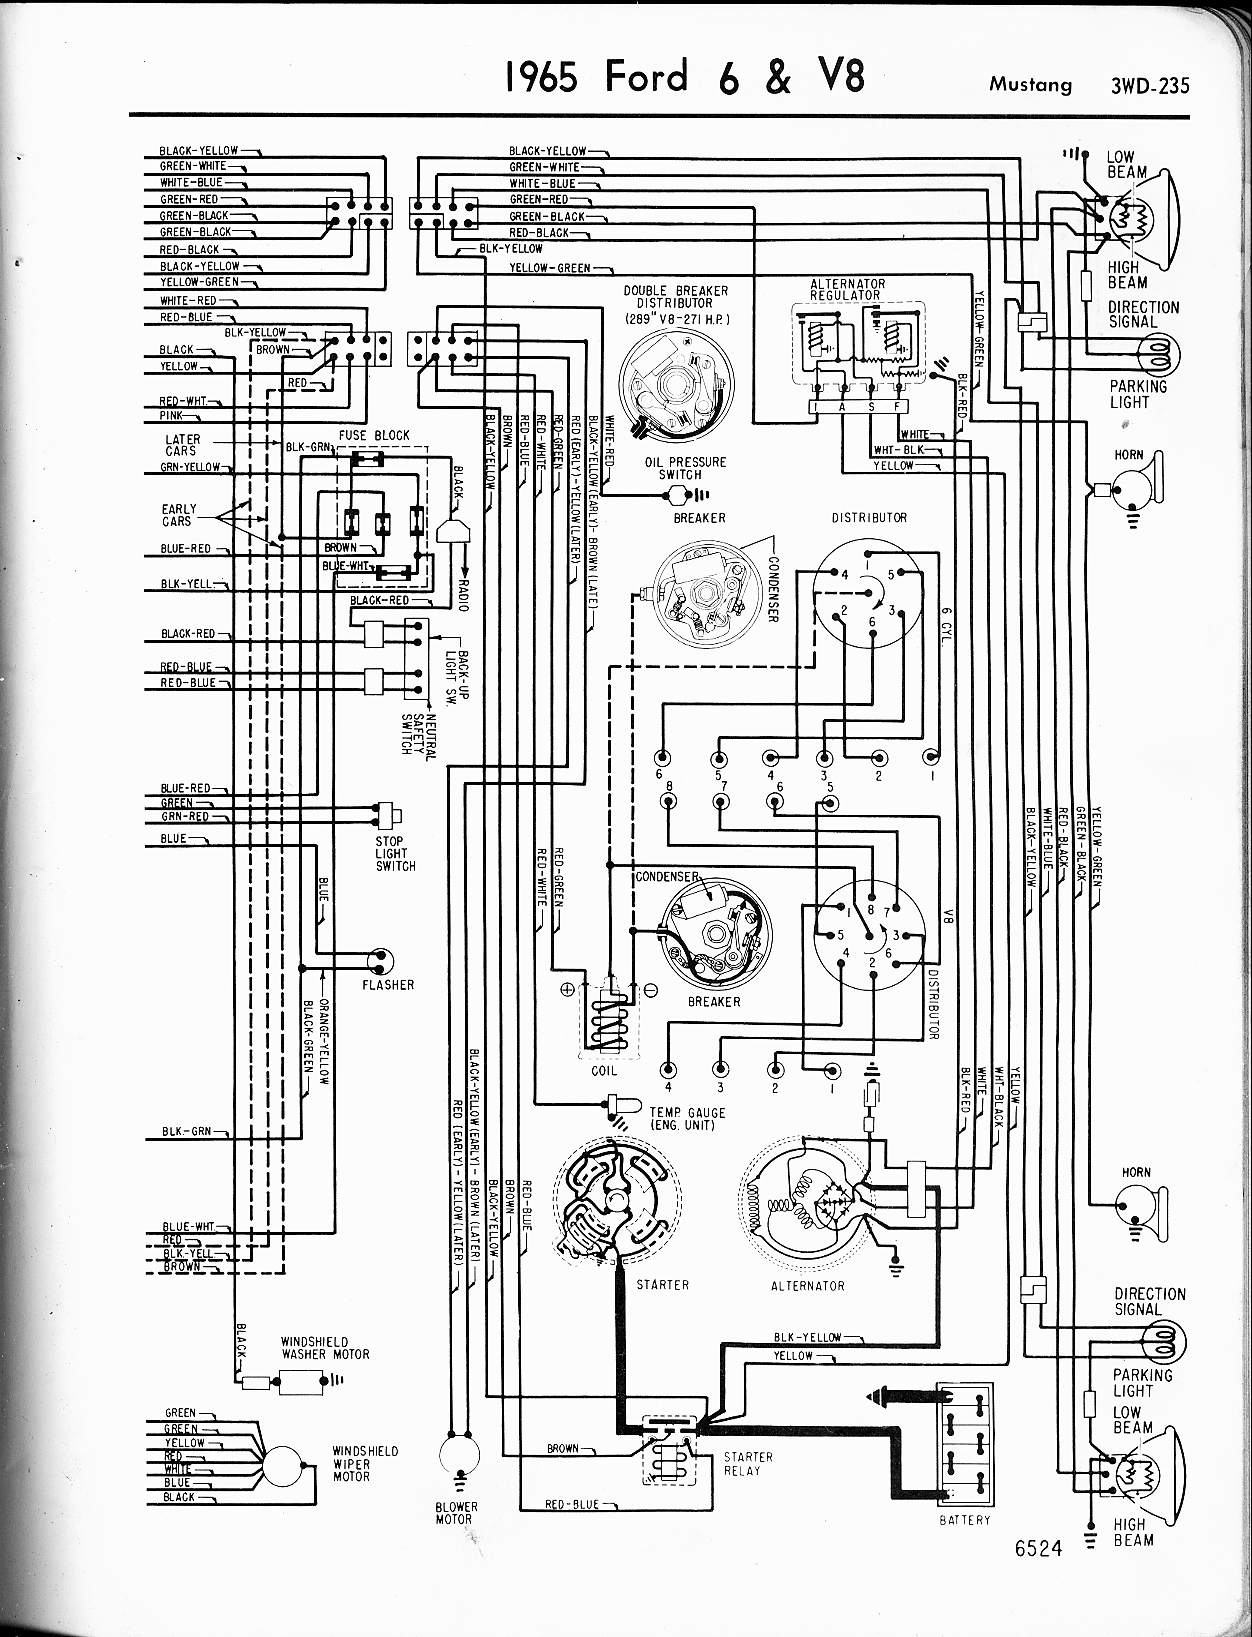 69 Ford Alternator Wiring Circuit Diagram Schematic 1965 Truck Diagrams 1988 65 Mustang 2 Drawing B